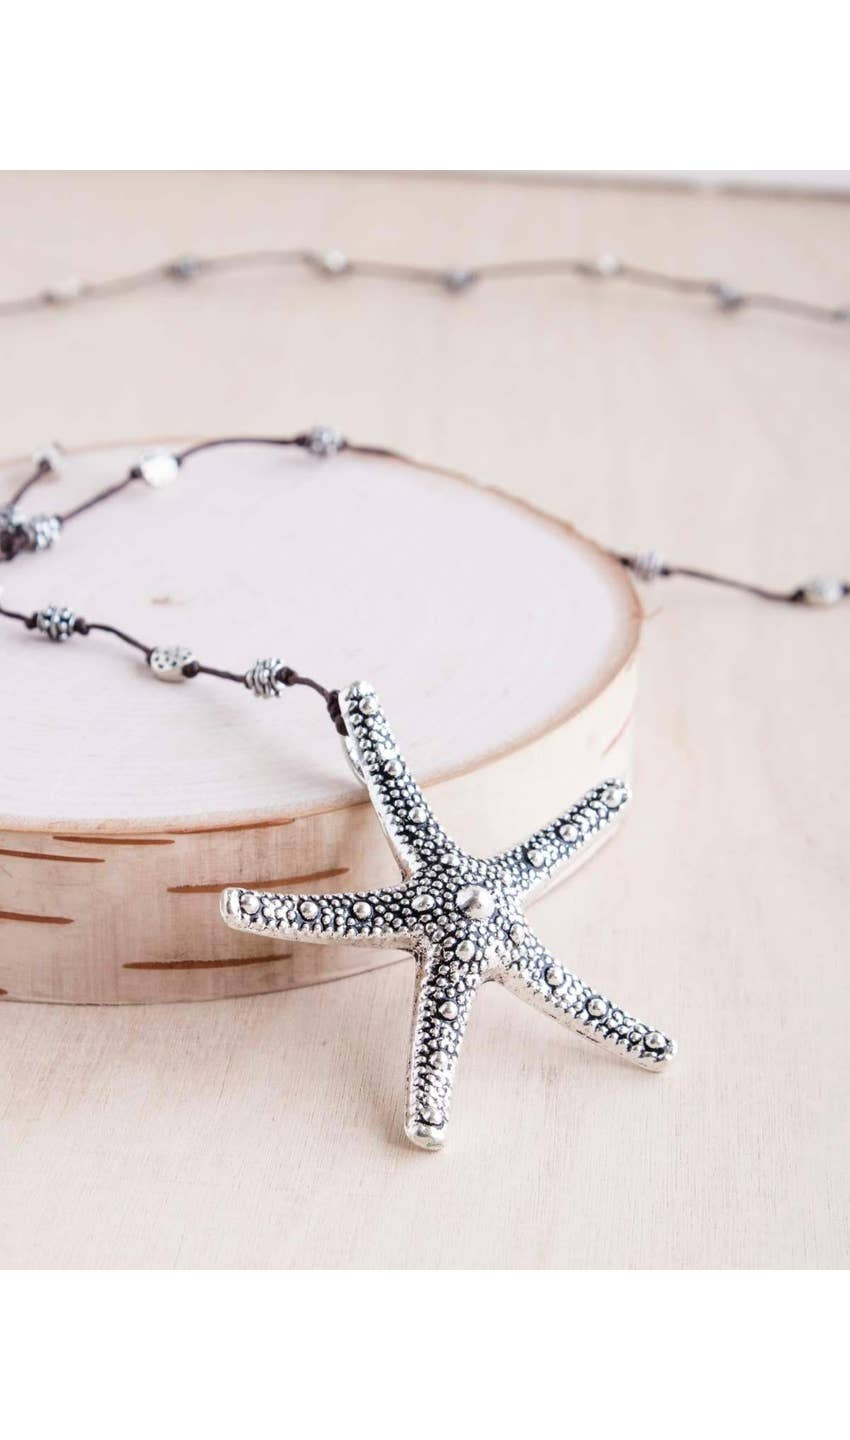 Silver Bumpy Starfish Necklace - dolly mama boutique